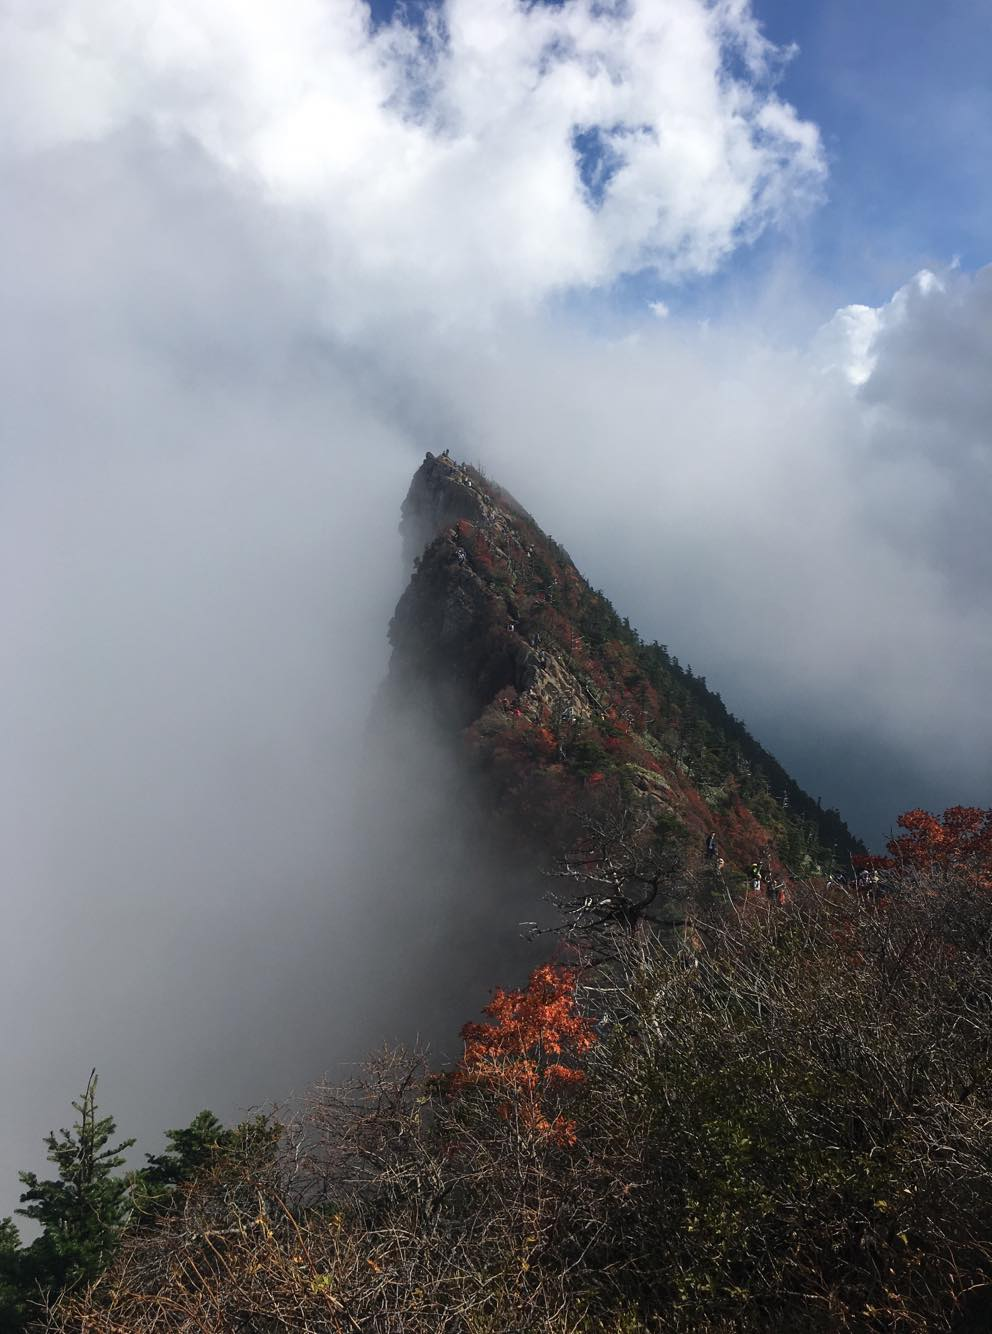 A view of a cliff side beset with clouds